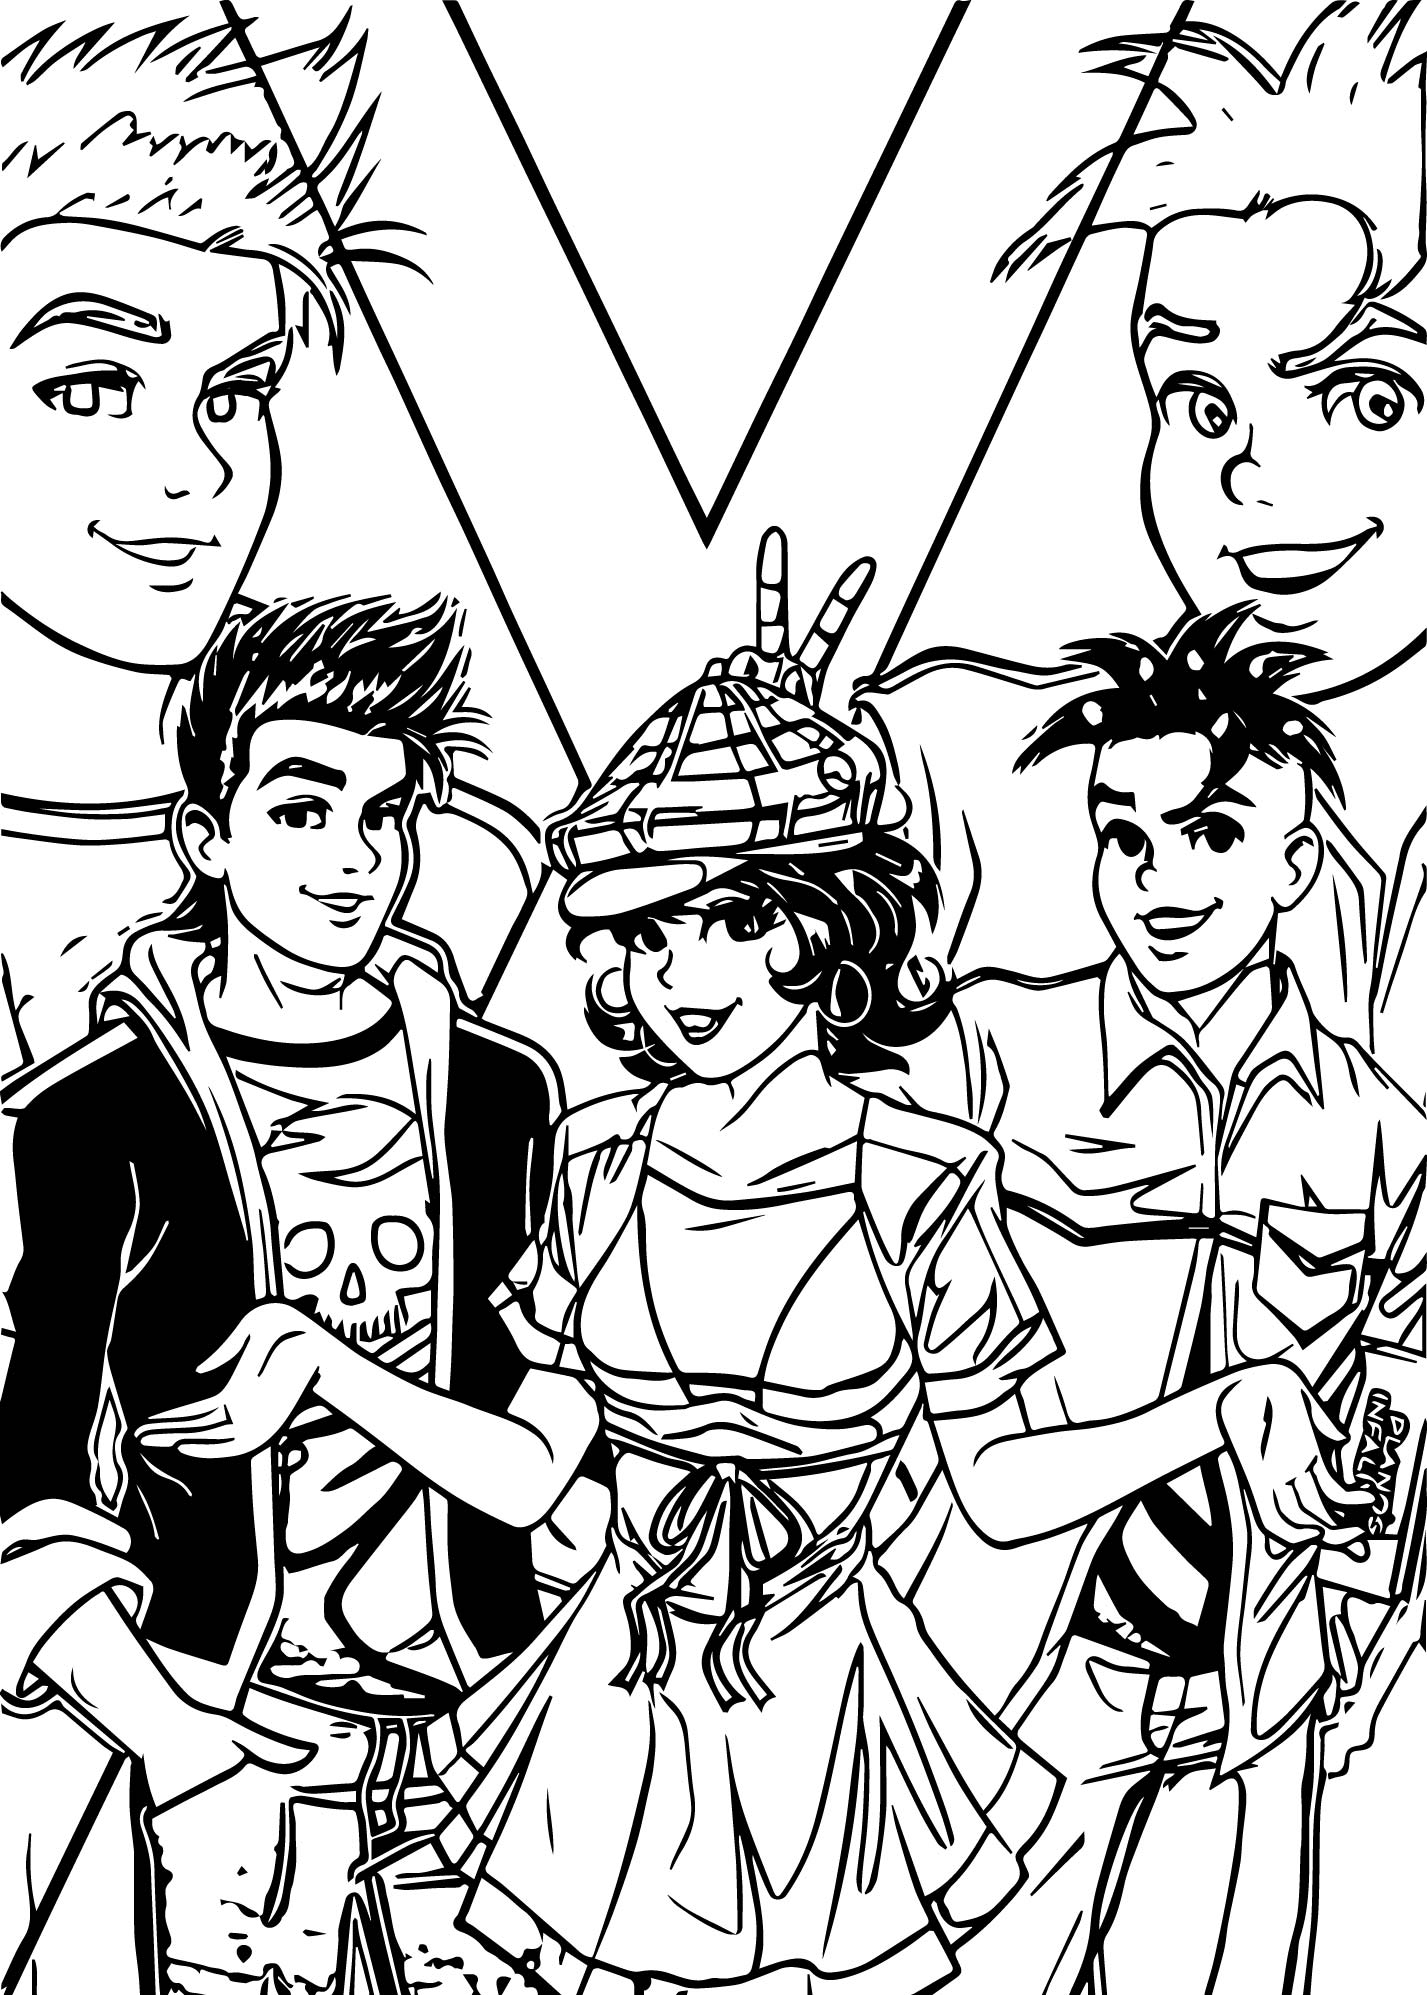 Monica And Boy Friends Coloring Page